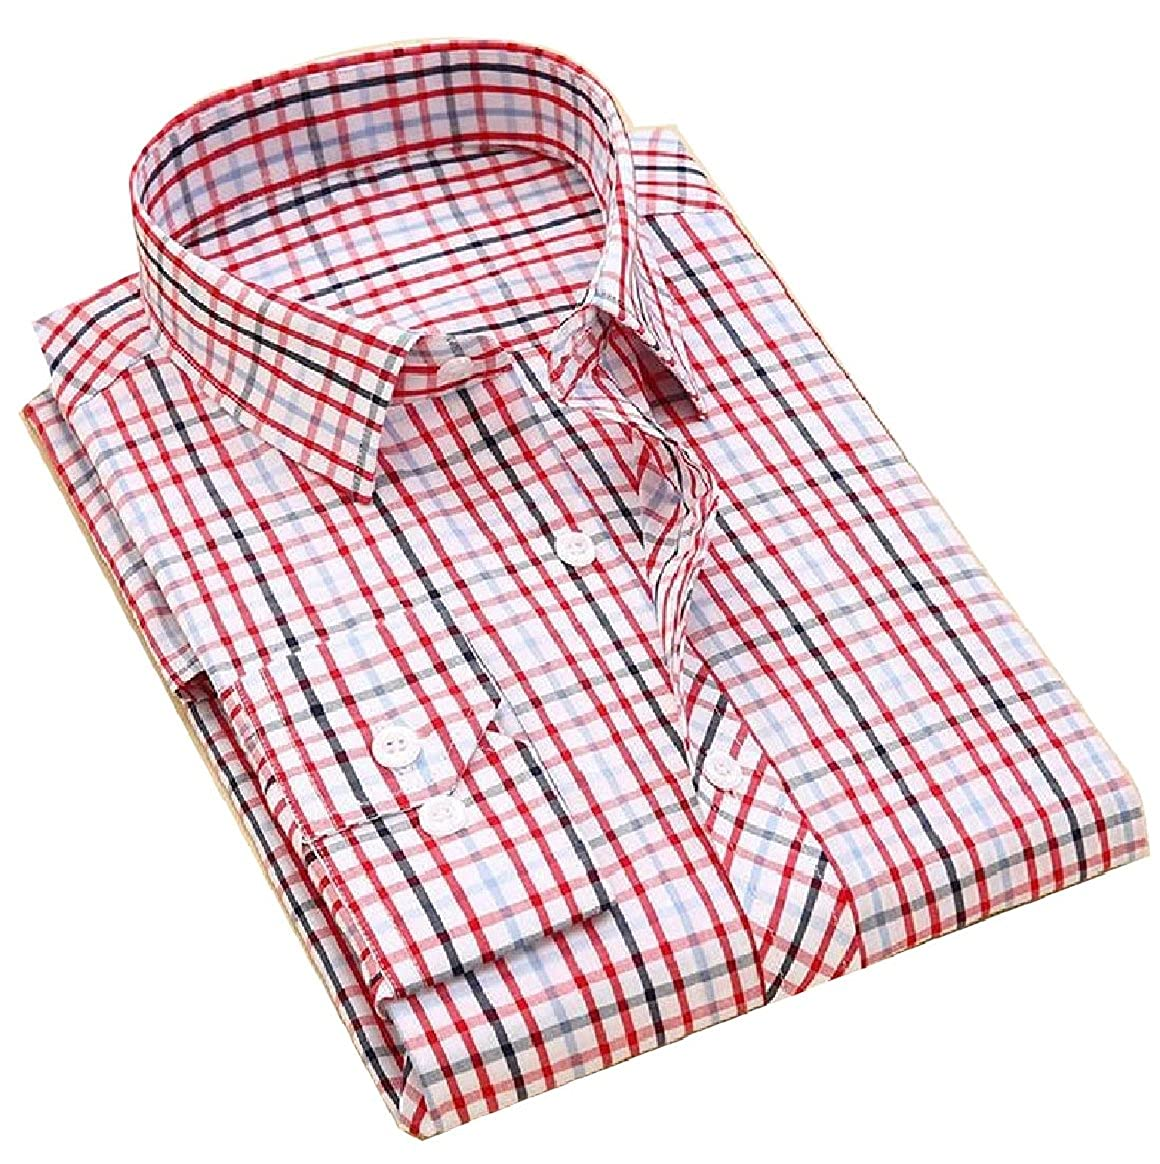 YUNY Men Cotton Classic Plaid Button Down Long-Sleeve Casual Shirt 3 XS